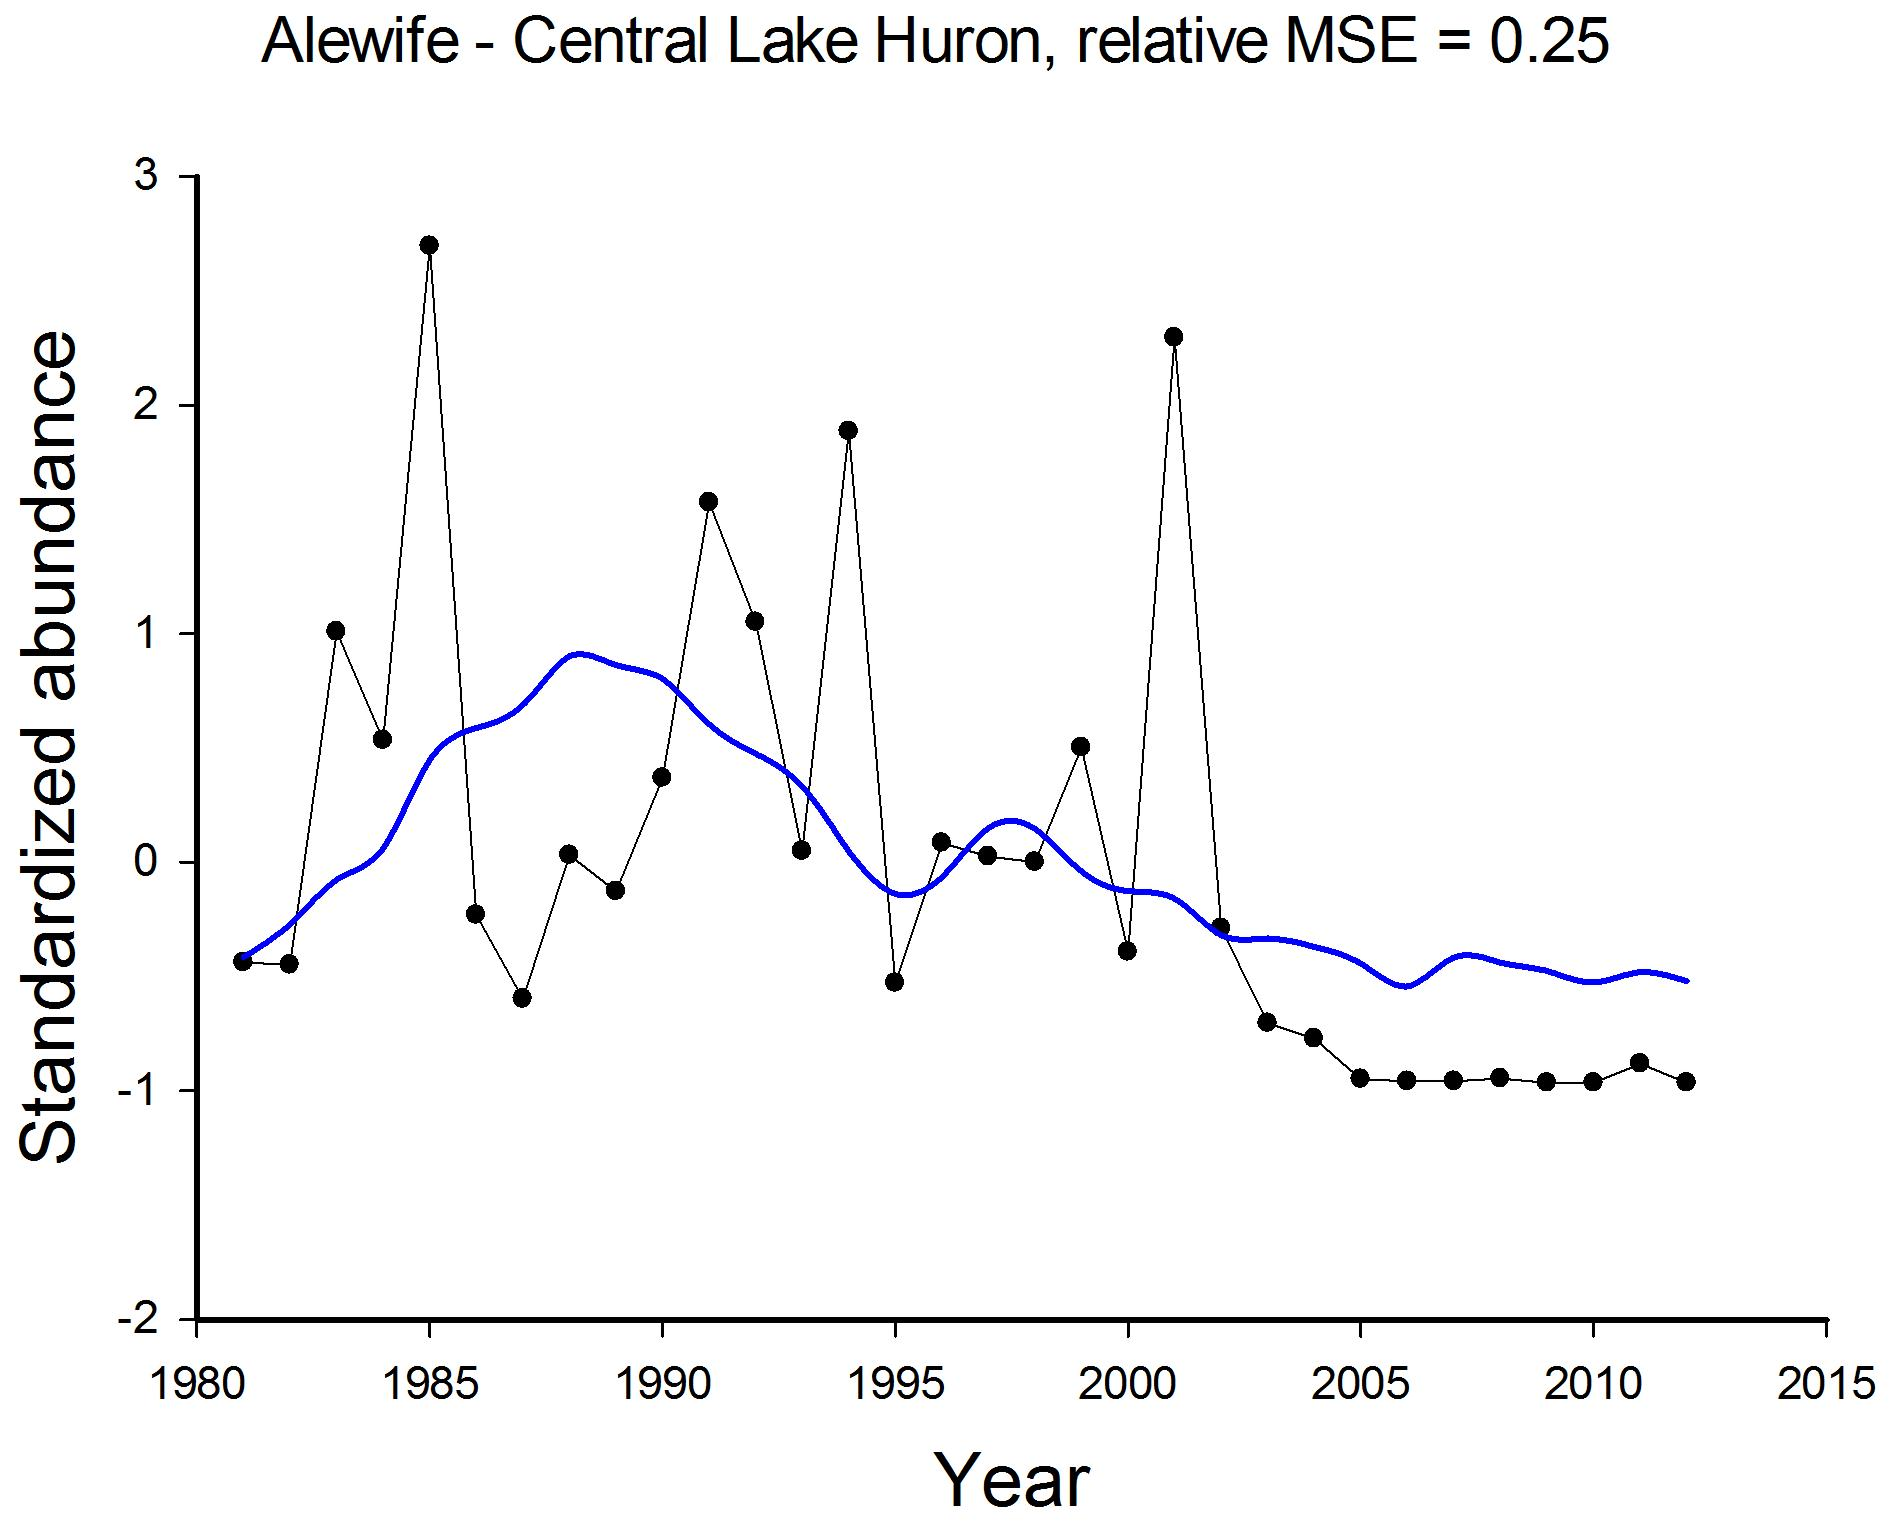 Figure 2. Observed (black dots and line) and predicted (blue line) temporal trends in standardized relative abundances of Alewife in Central Lake Huron based on dynamic factor analysis of standardized gillnet Catch Per Effort data.